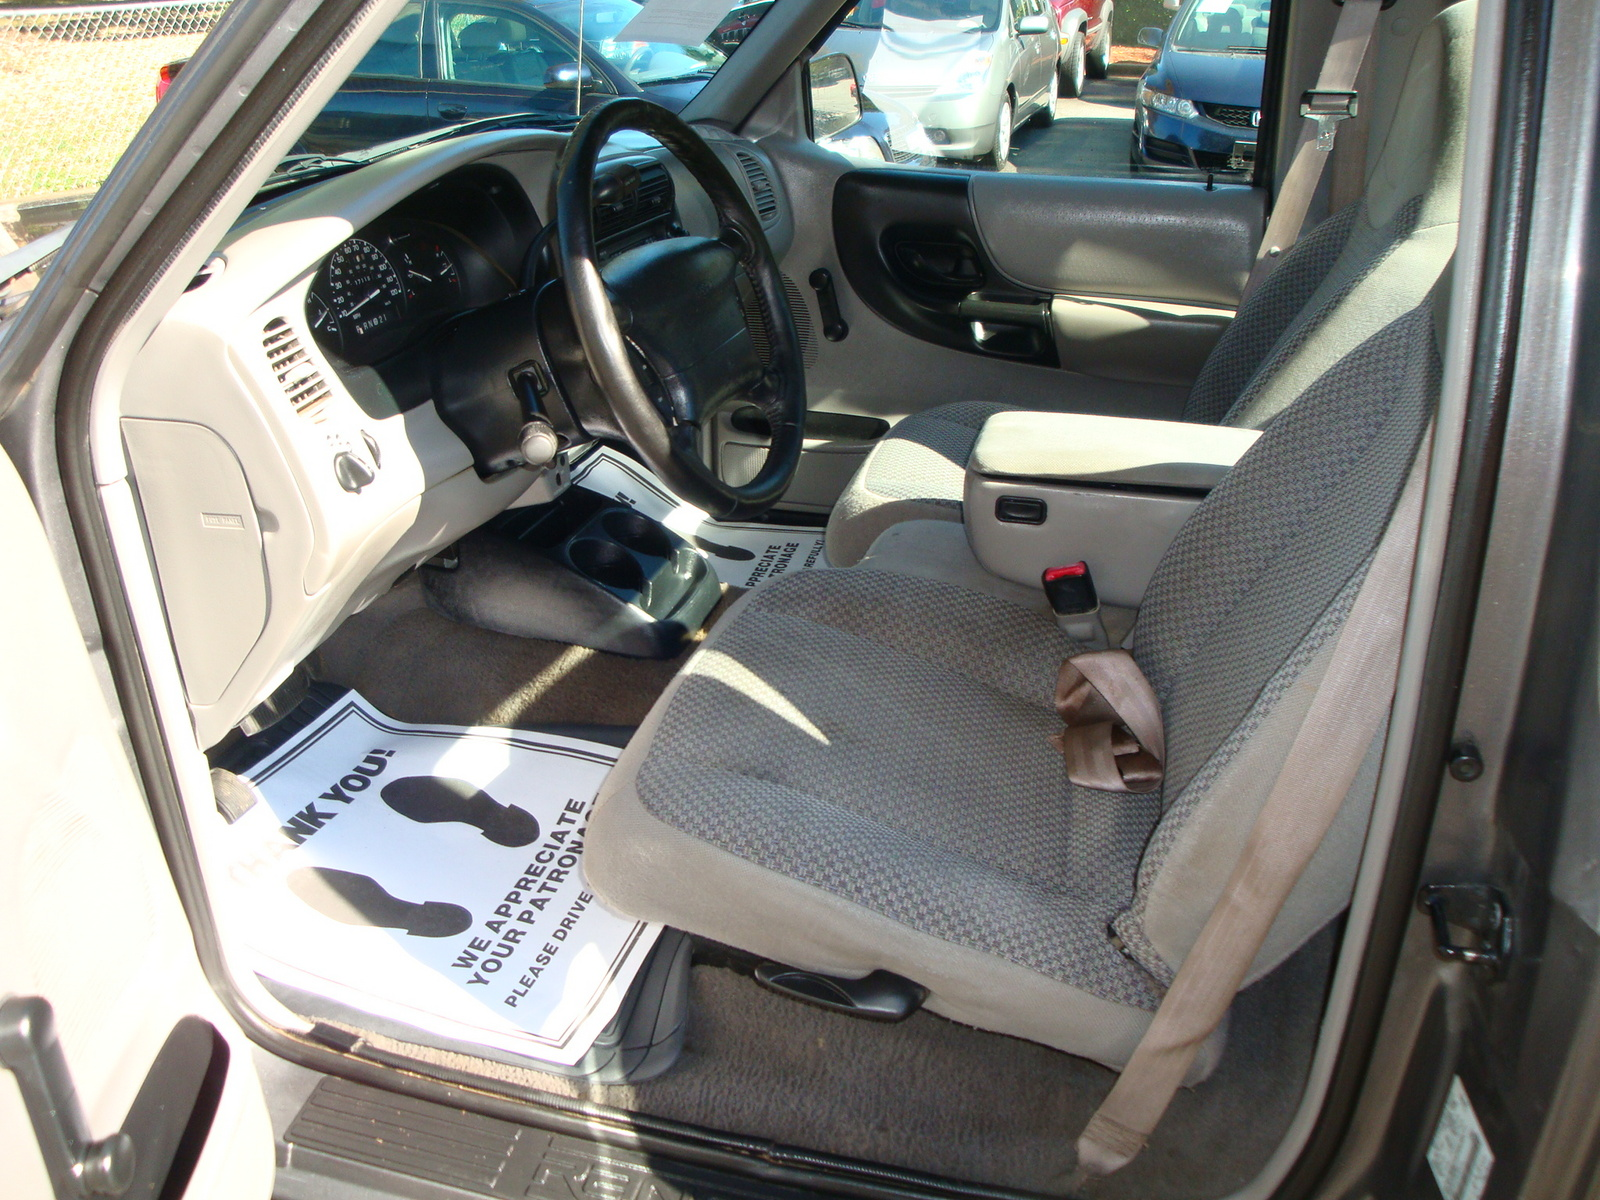 2000 Ford Ranger Xl Standard Cab Sb Picture Of 2000 Ford